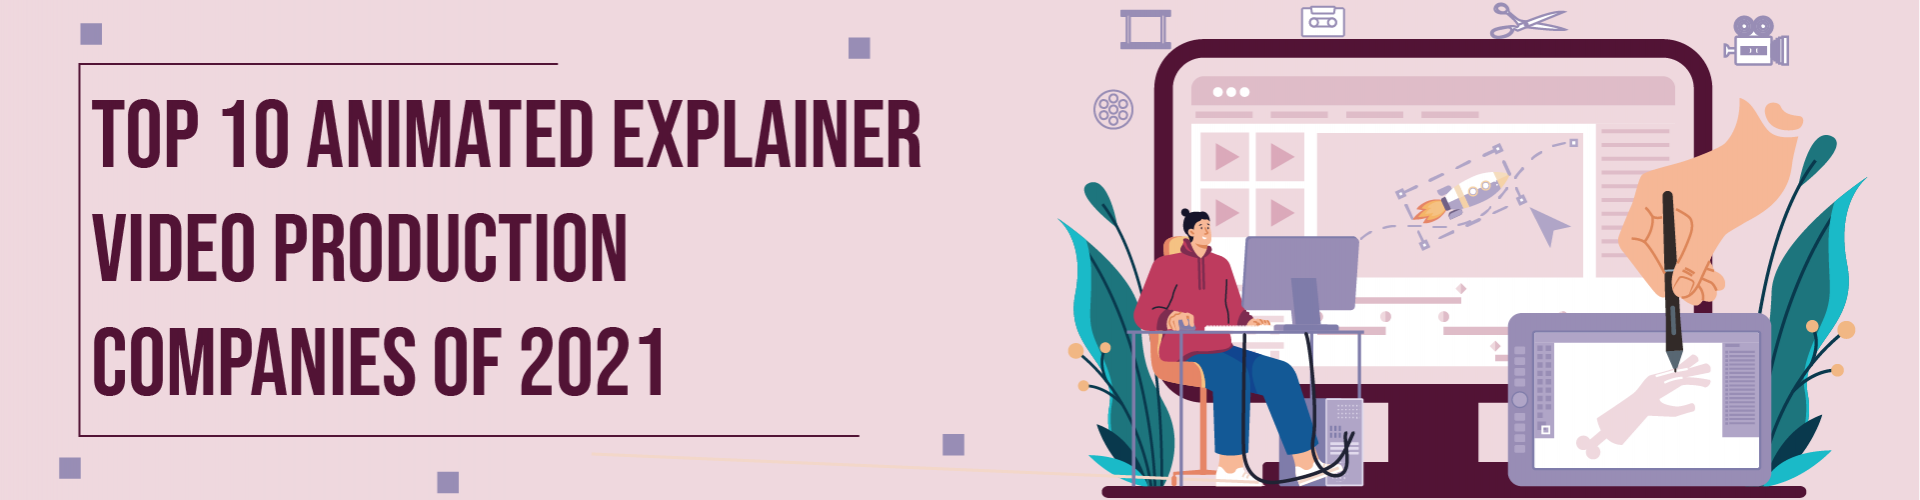 Top 10 Animated Explainer Video Production Companies of 2021